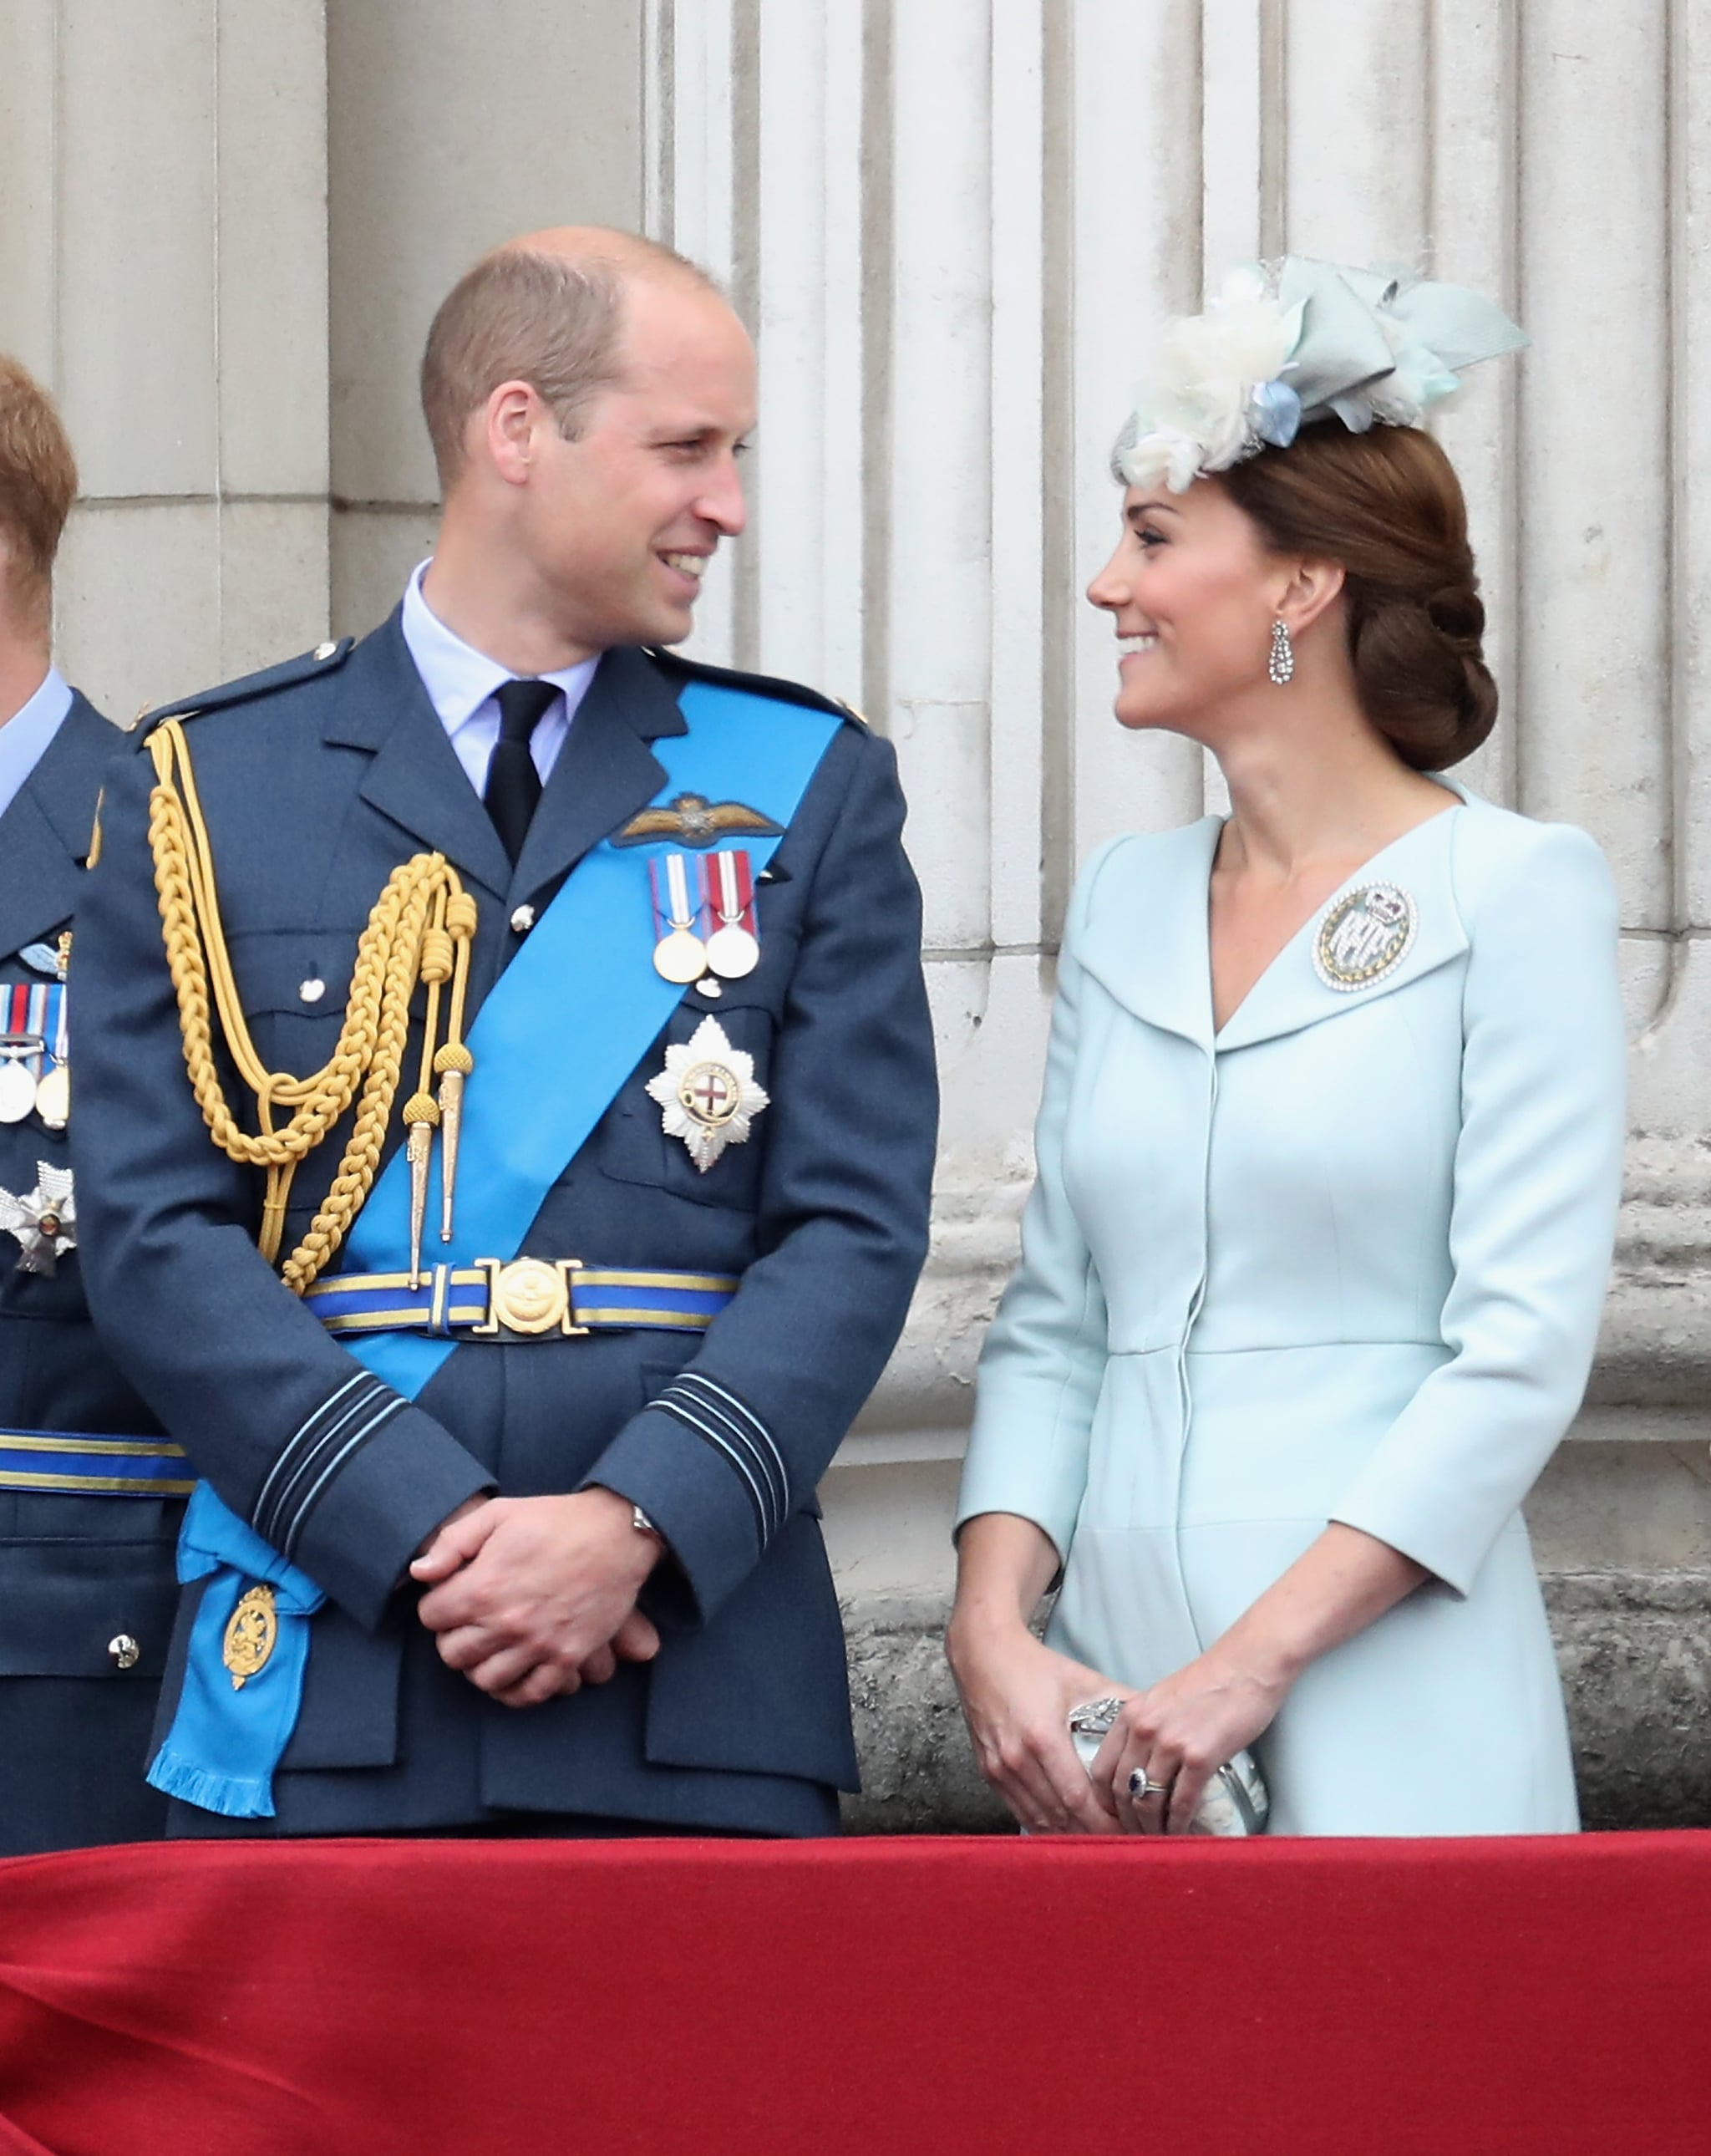 LONDON, ENGLAND - JULY 10: Prince William, Duke of Cambridge and Catherine, Duchess of Cambridge watch the RAF flypast on the balcony of Buckingham Palace, as members of the Royal Family attend events to mark the centenary of the RAF on July 10, 2018 in London, England.  (Photo by Chris Jackson/Getty Images)